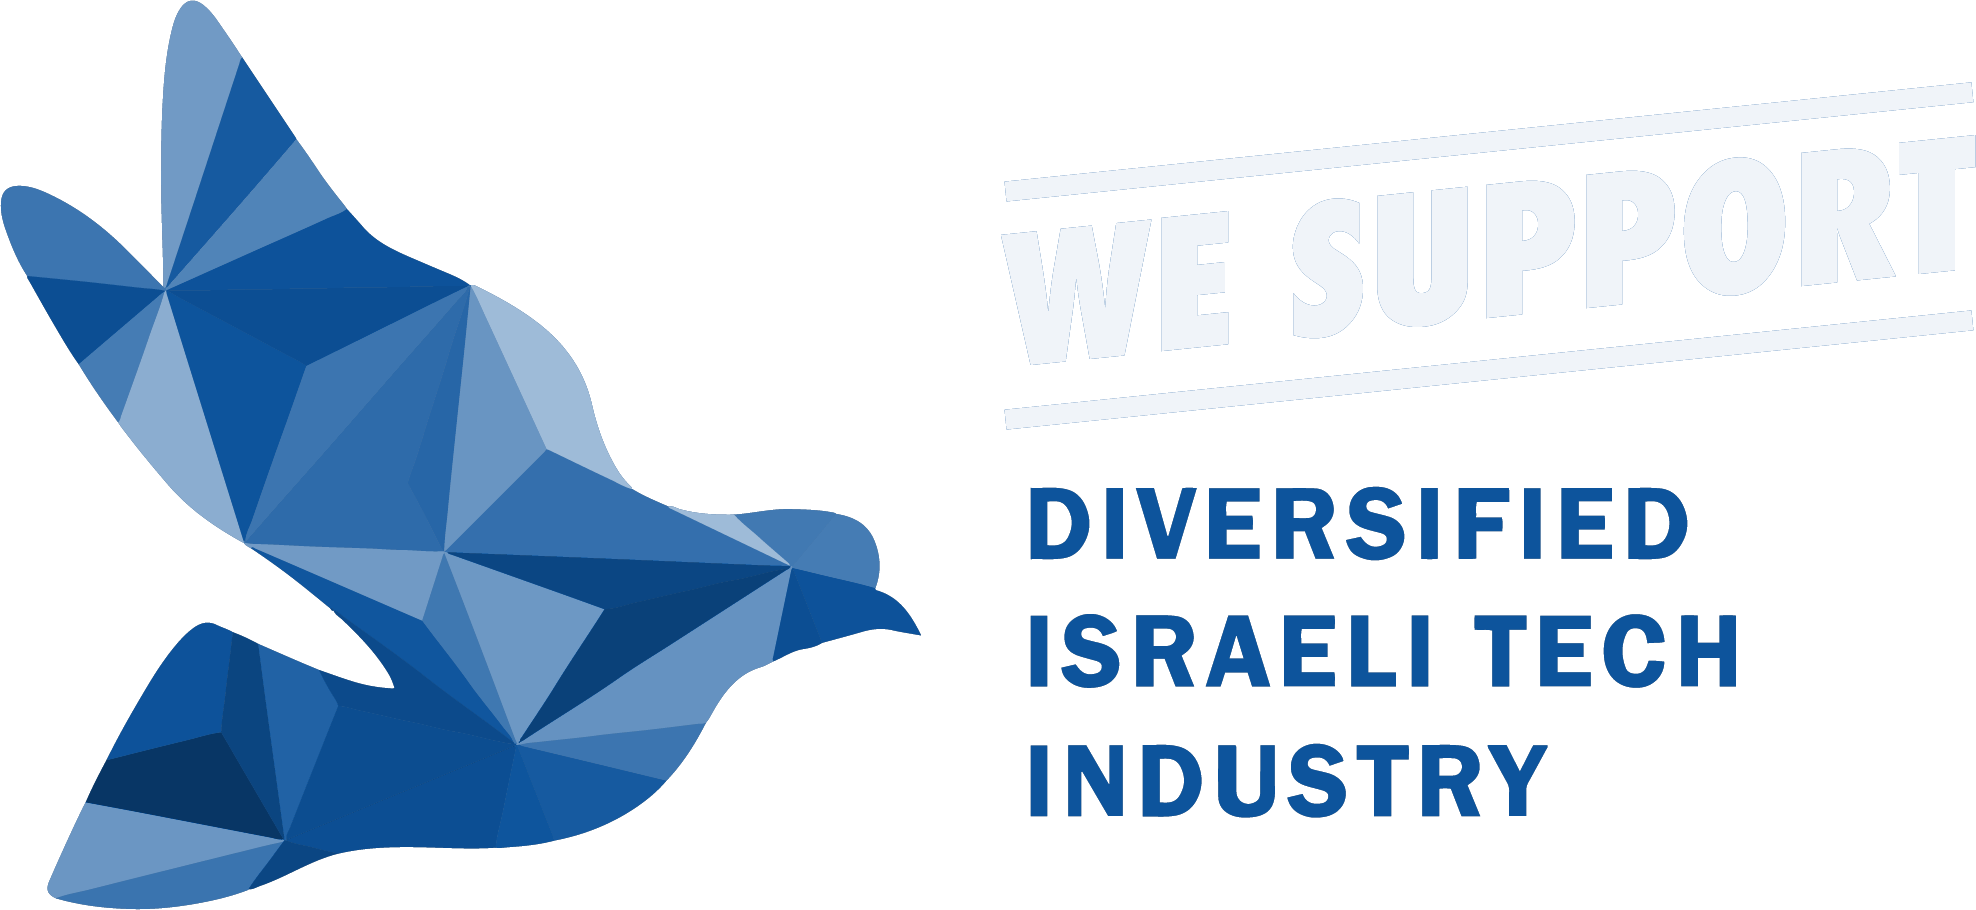 We support diversified israeli tech industry